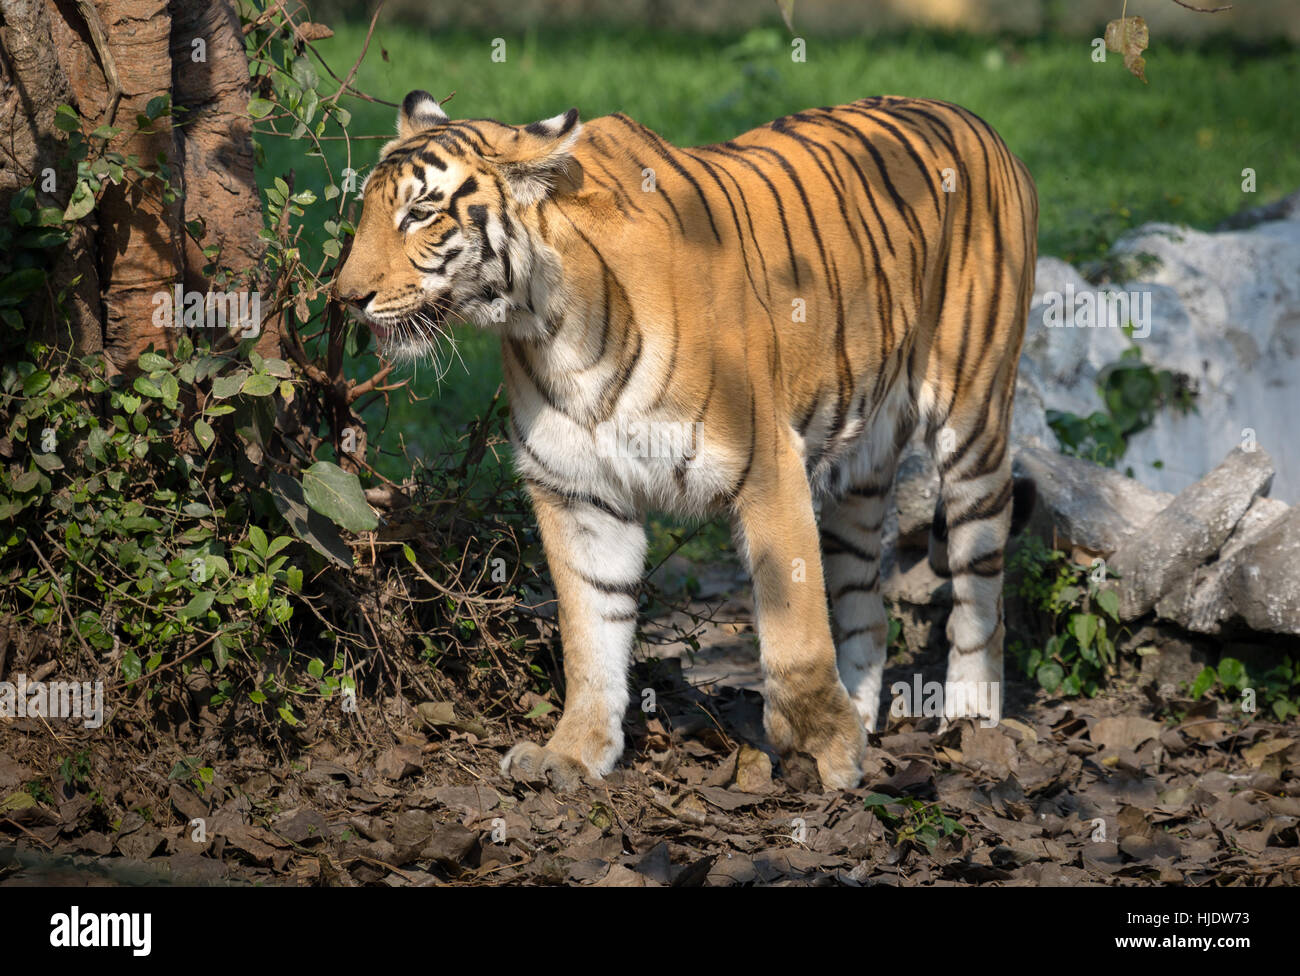 Royal Bengal tiger at an enclosure in an animal and wildlife sanctuary in India. - Stock Image